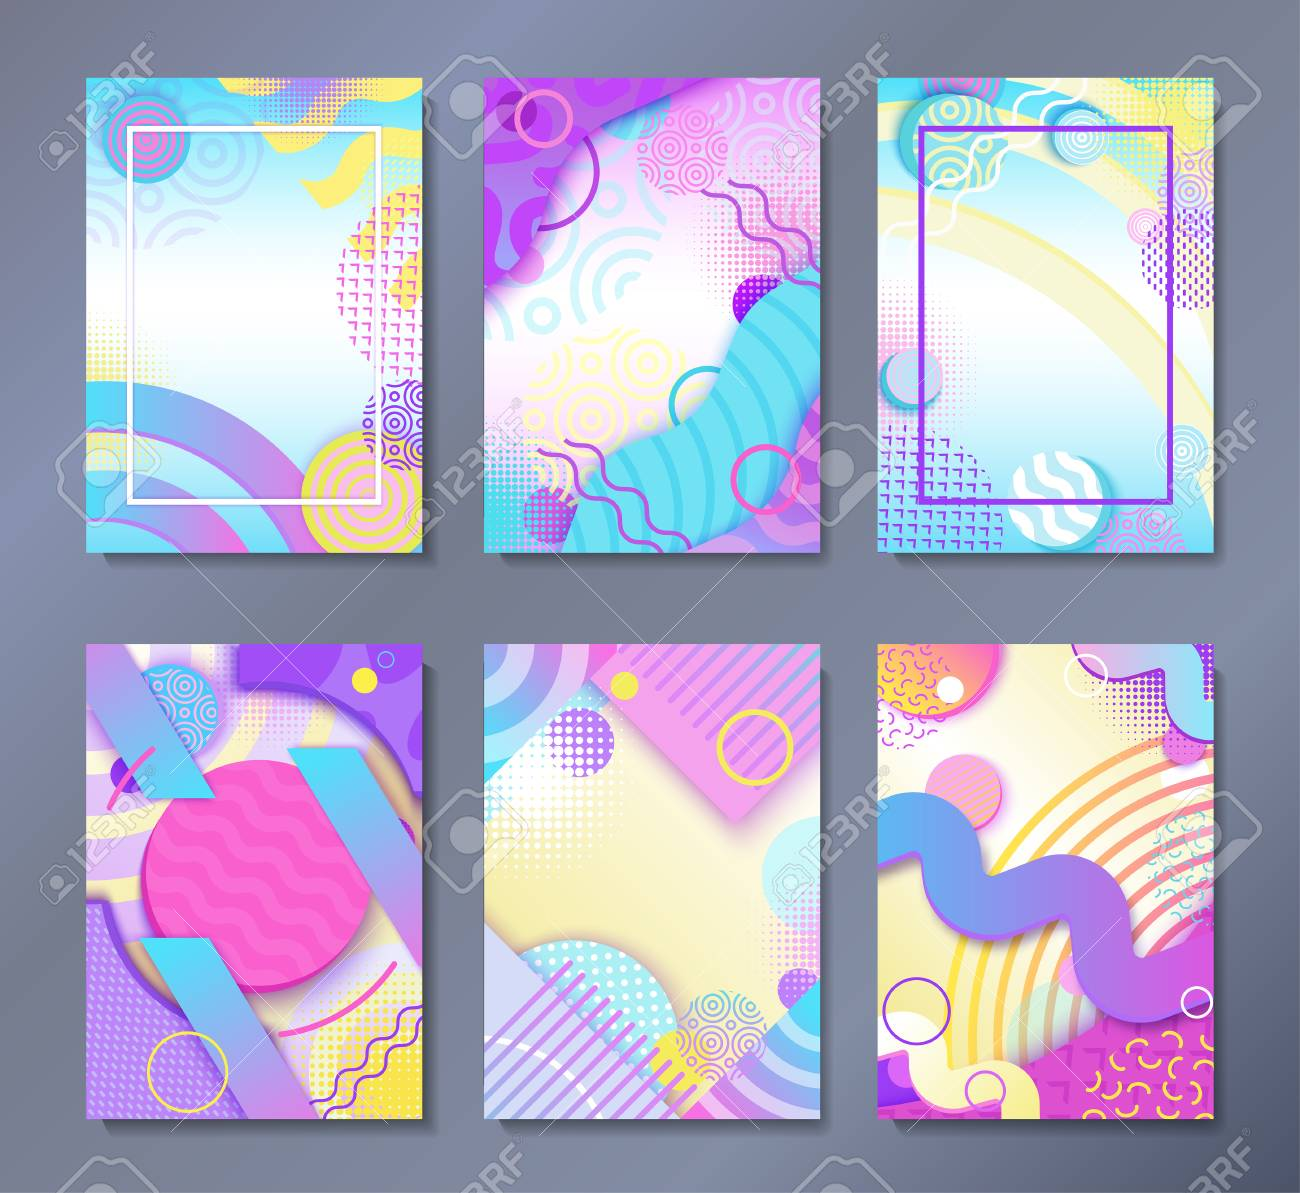 Abstract posters set in trendy 80s-90s Memphis style with patterns,